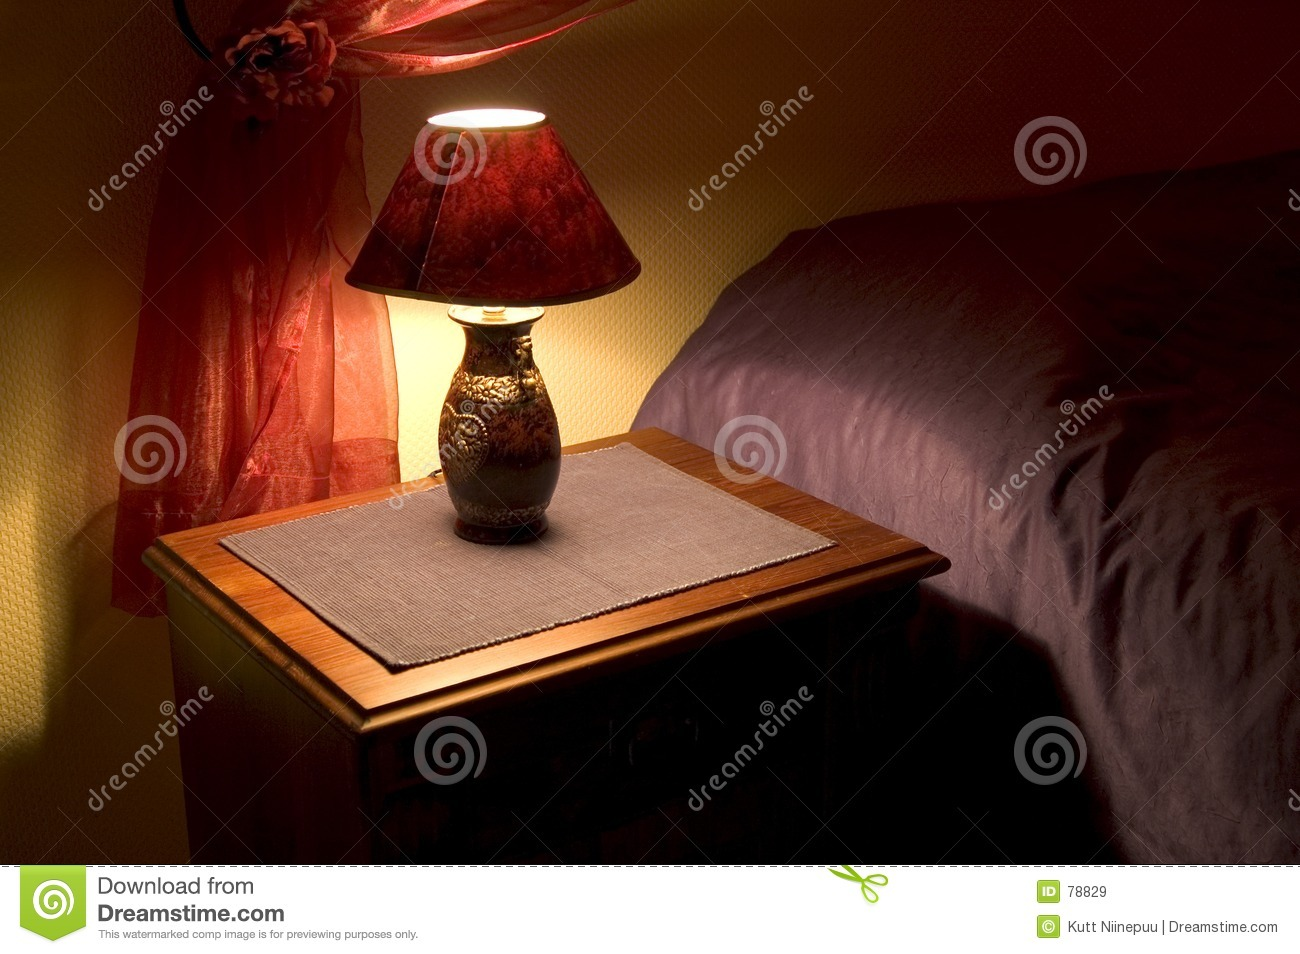 Nightlamp